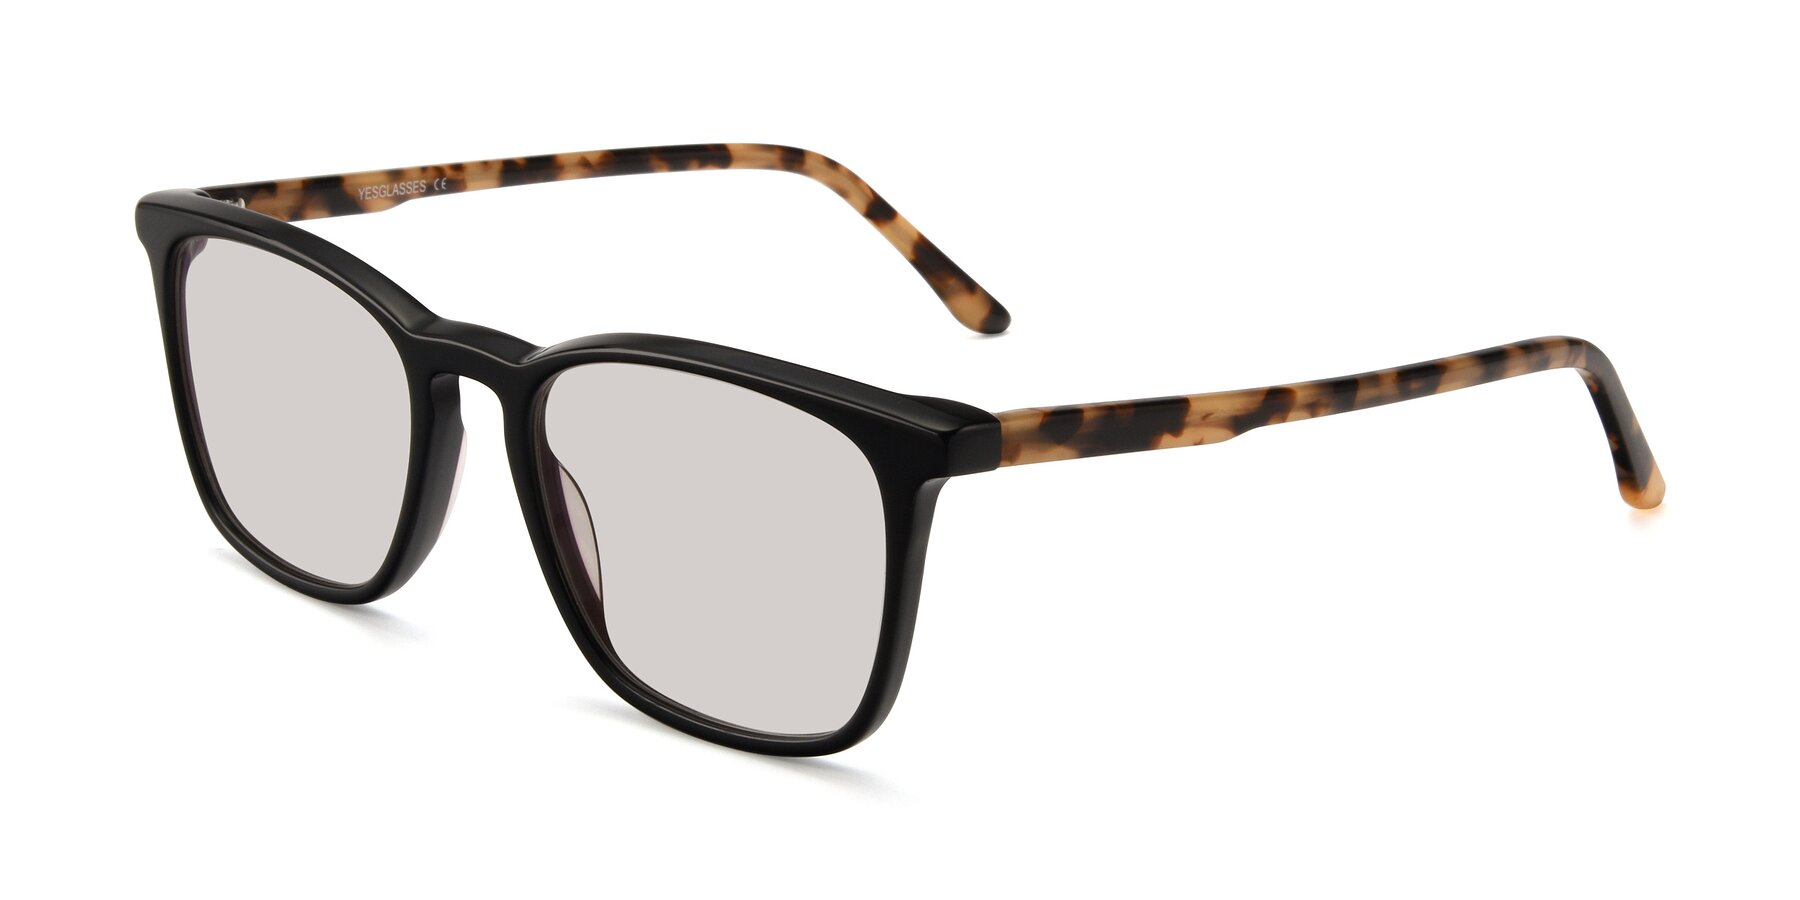 Angle of Vigor in Black-Tortoise with Light Brown Tinted Lenses